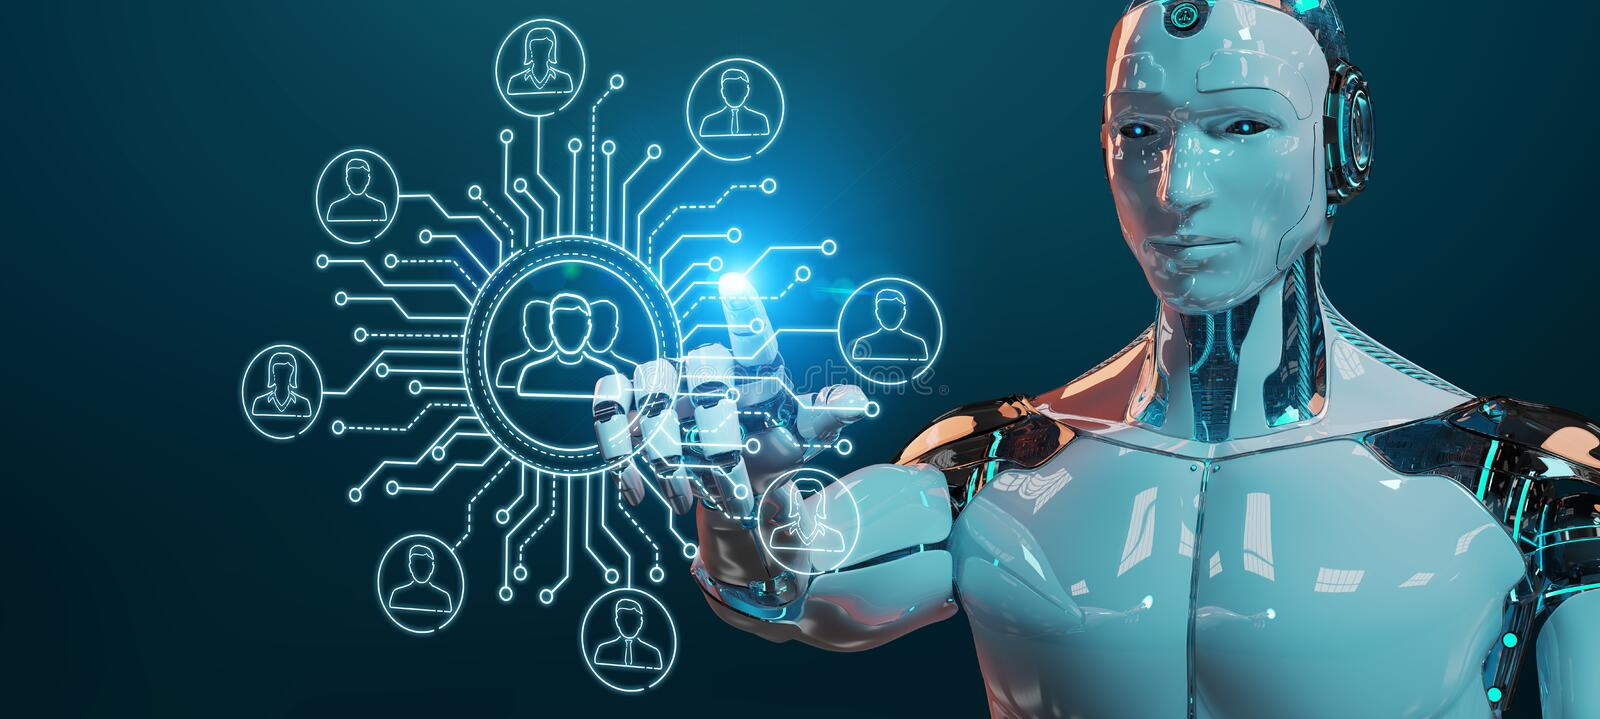 White robot controlling social network icons interface. White robot on blurred background controlling social network icons interface stock illustration